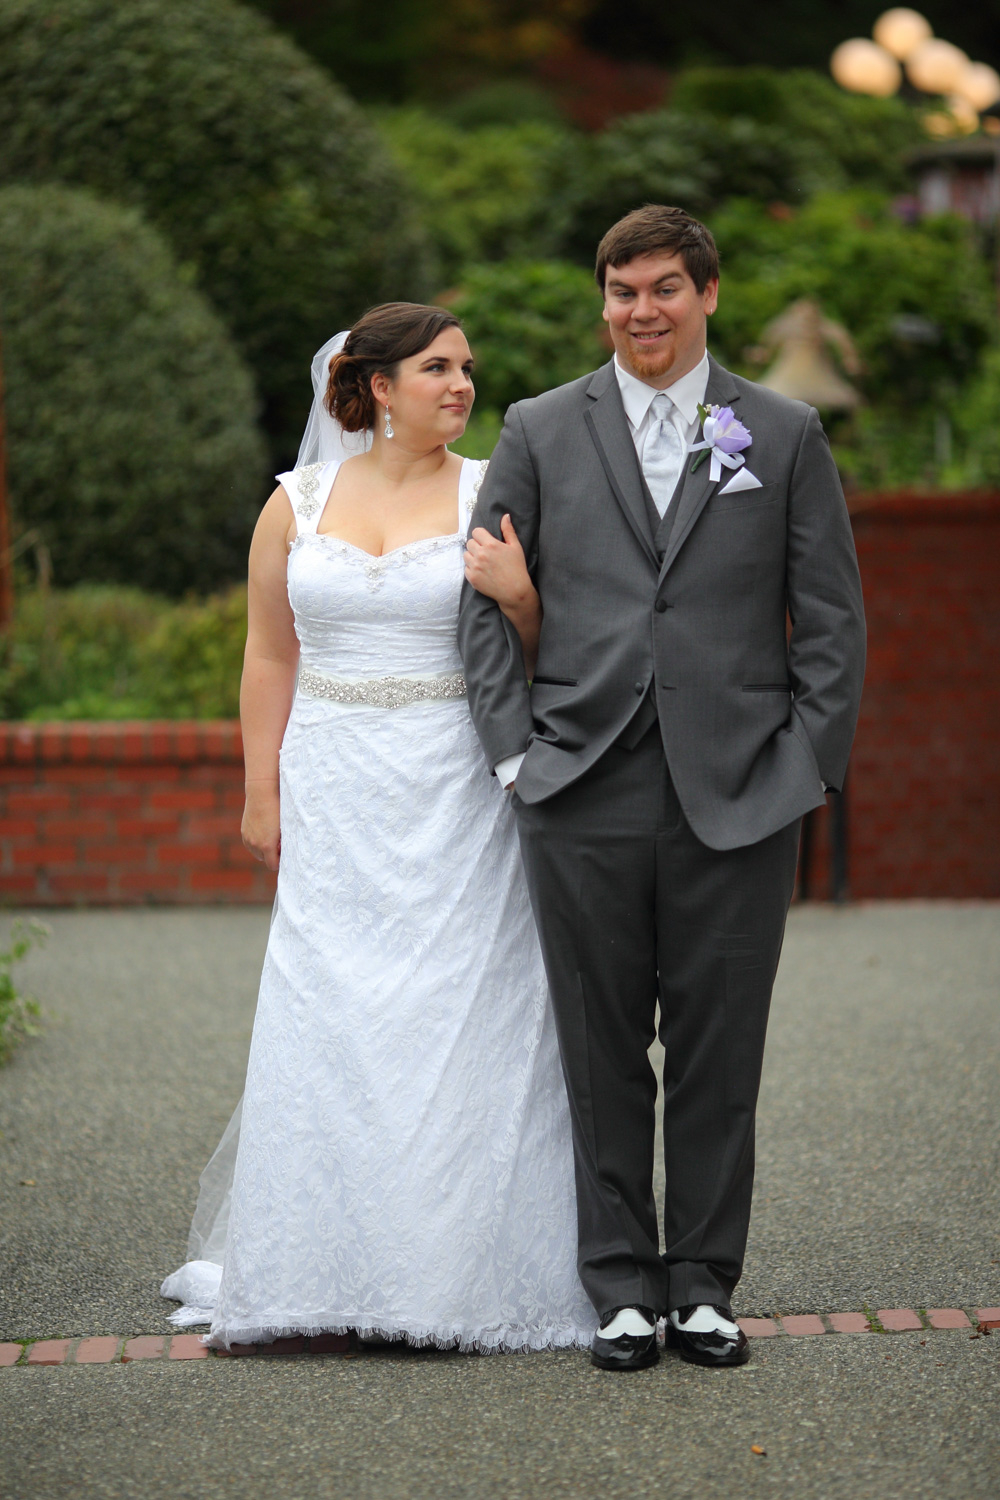 Wedding Hollywood Schoolhouse Woodinville Washington 14.jpg